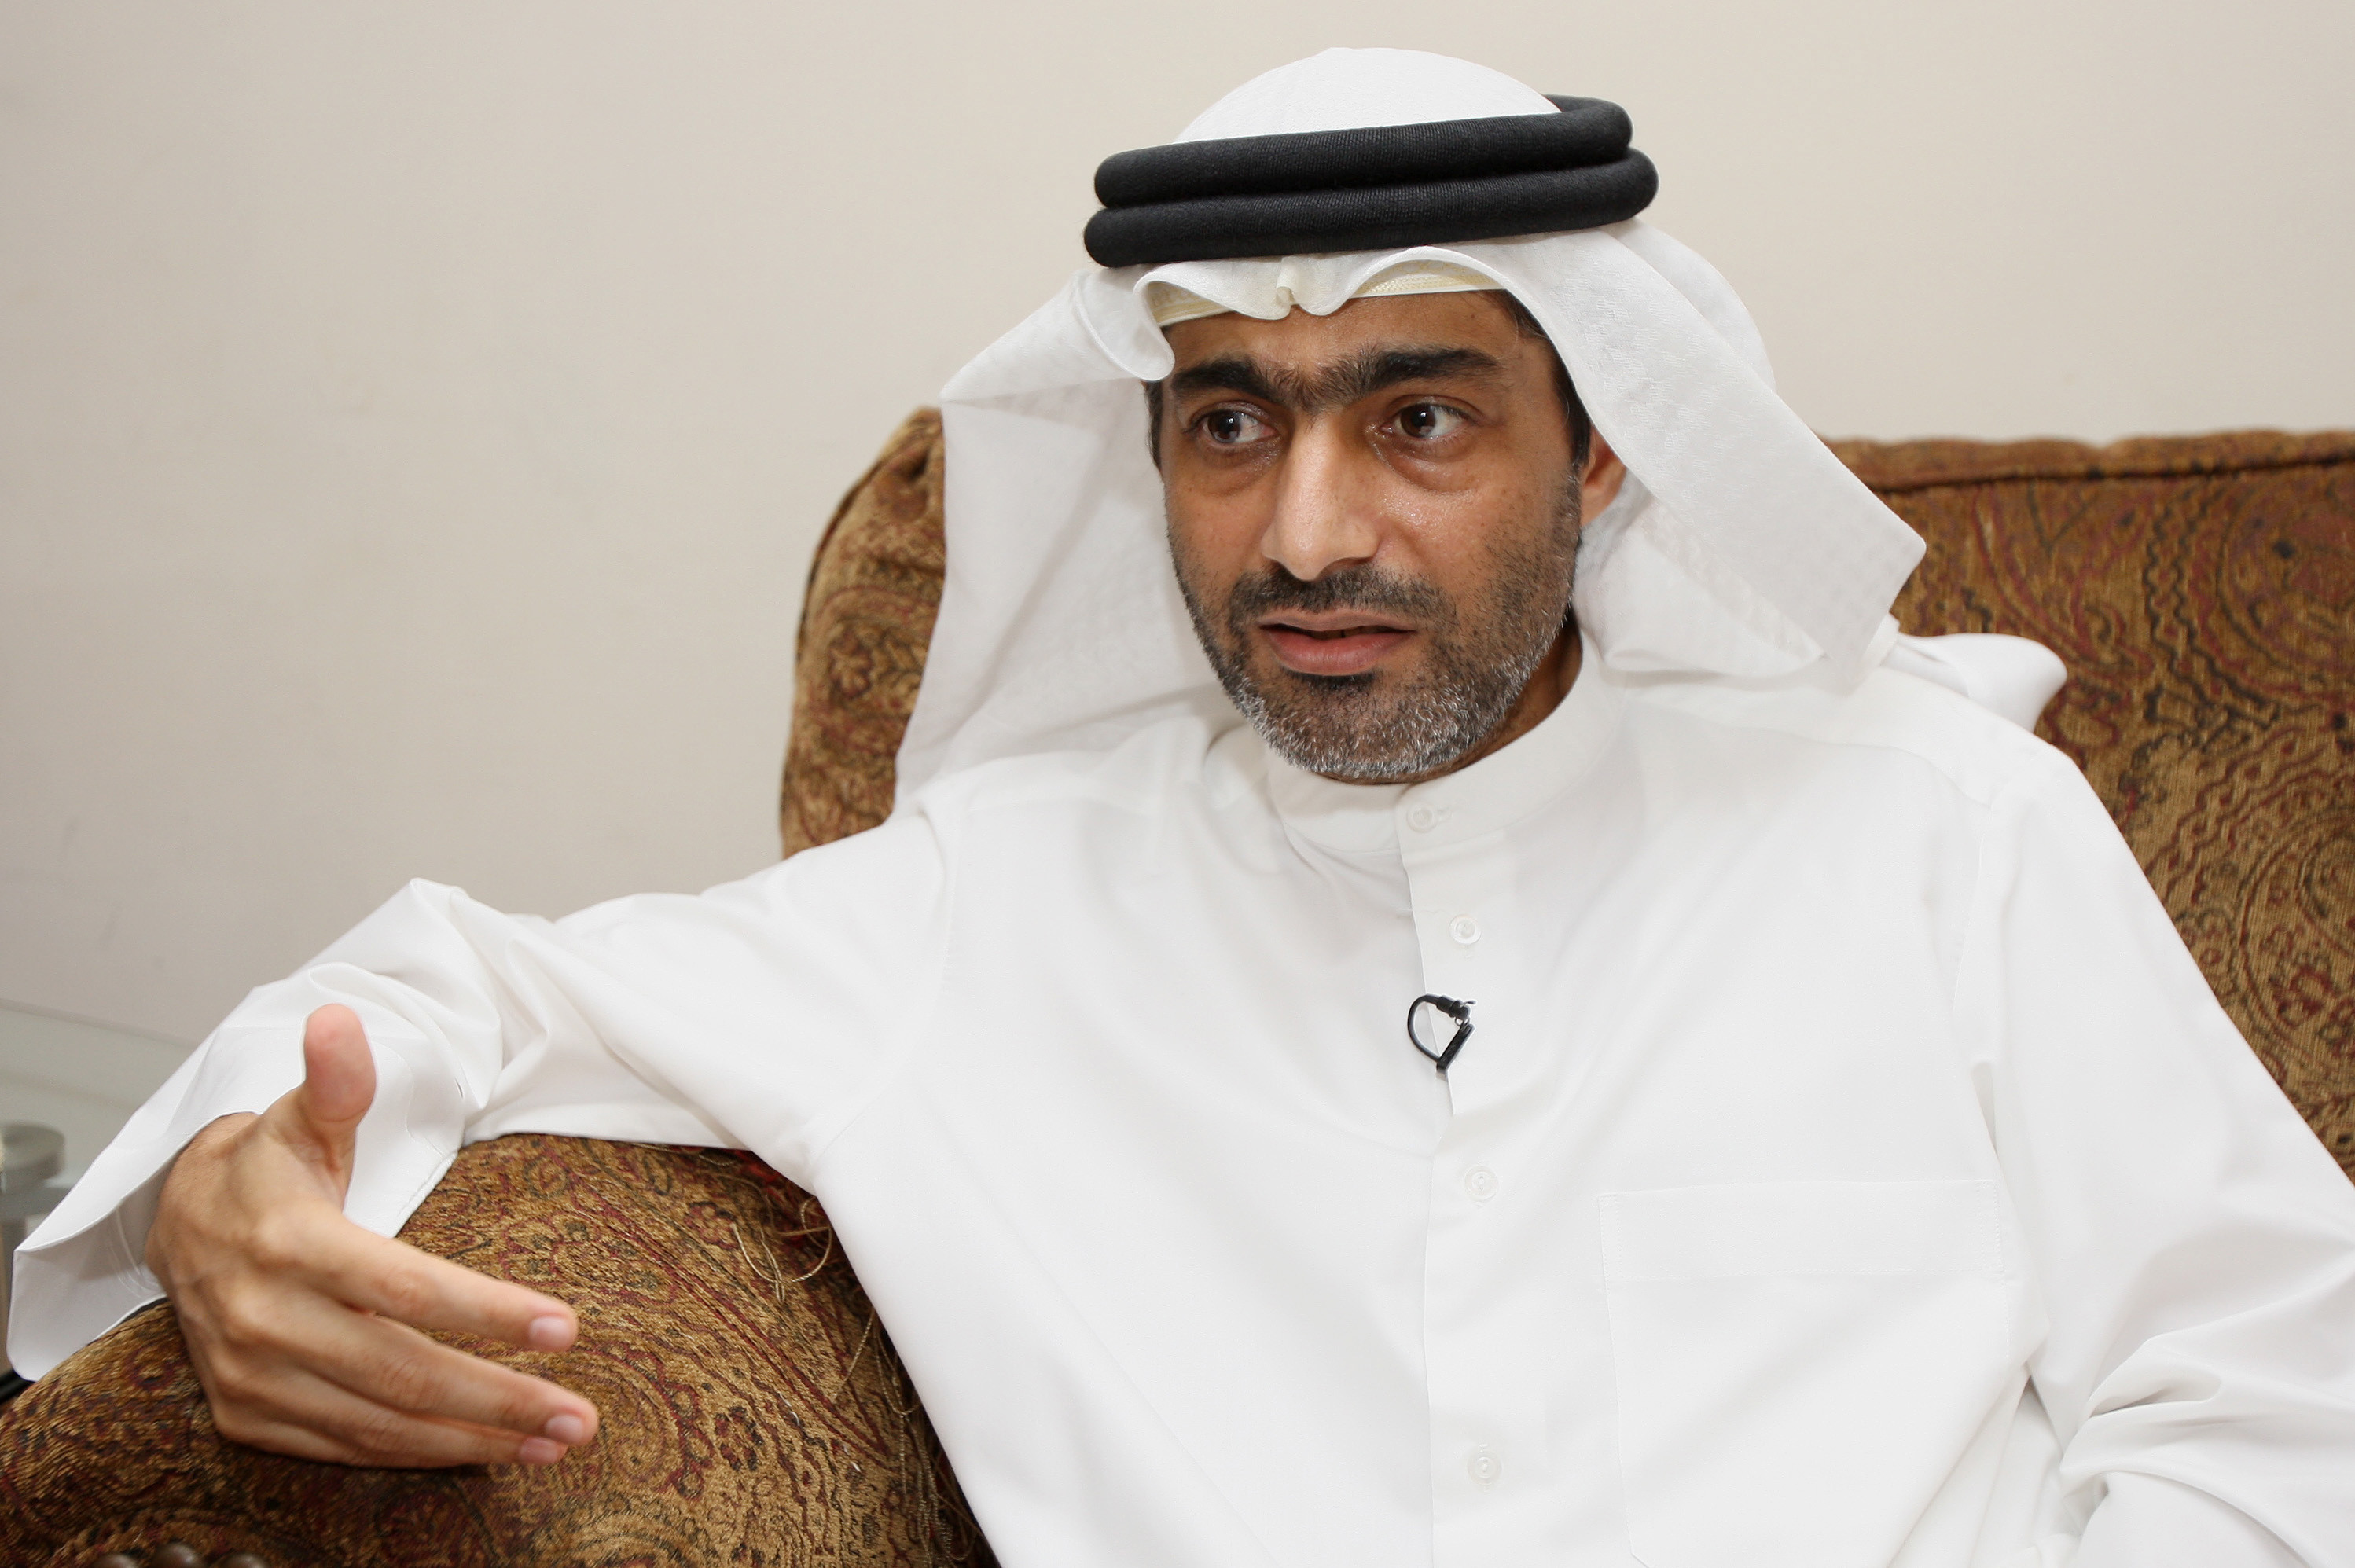 Rights defender Ahmed Mansoor in Dubai in 2011, a day after he was pardoned following a conviction for insulting UAE leaders. He is now in prison once more.